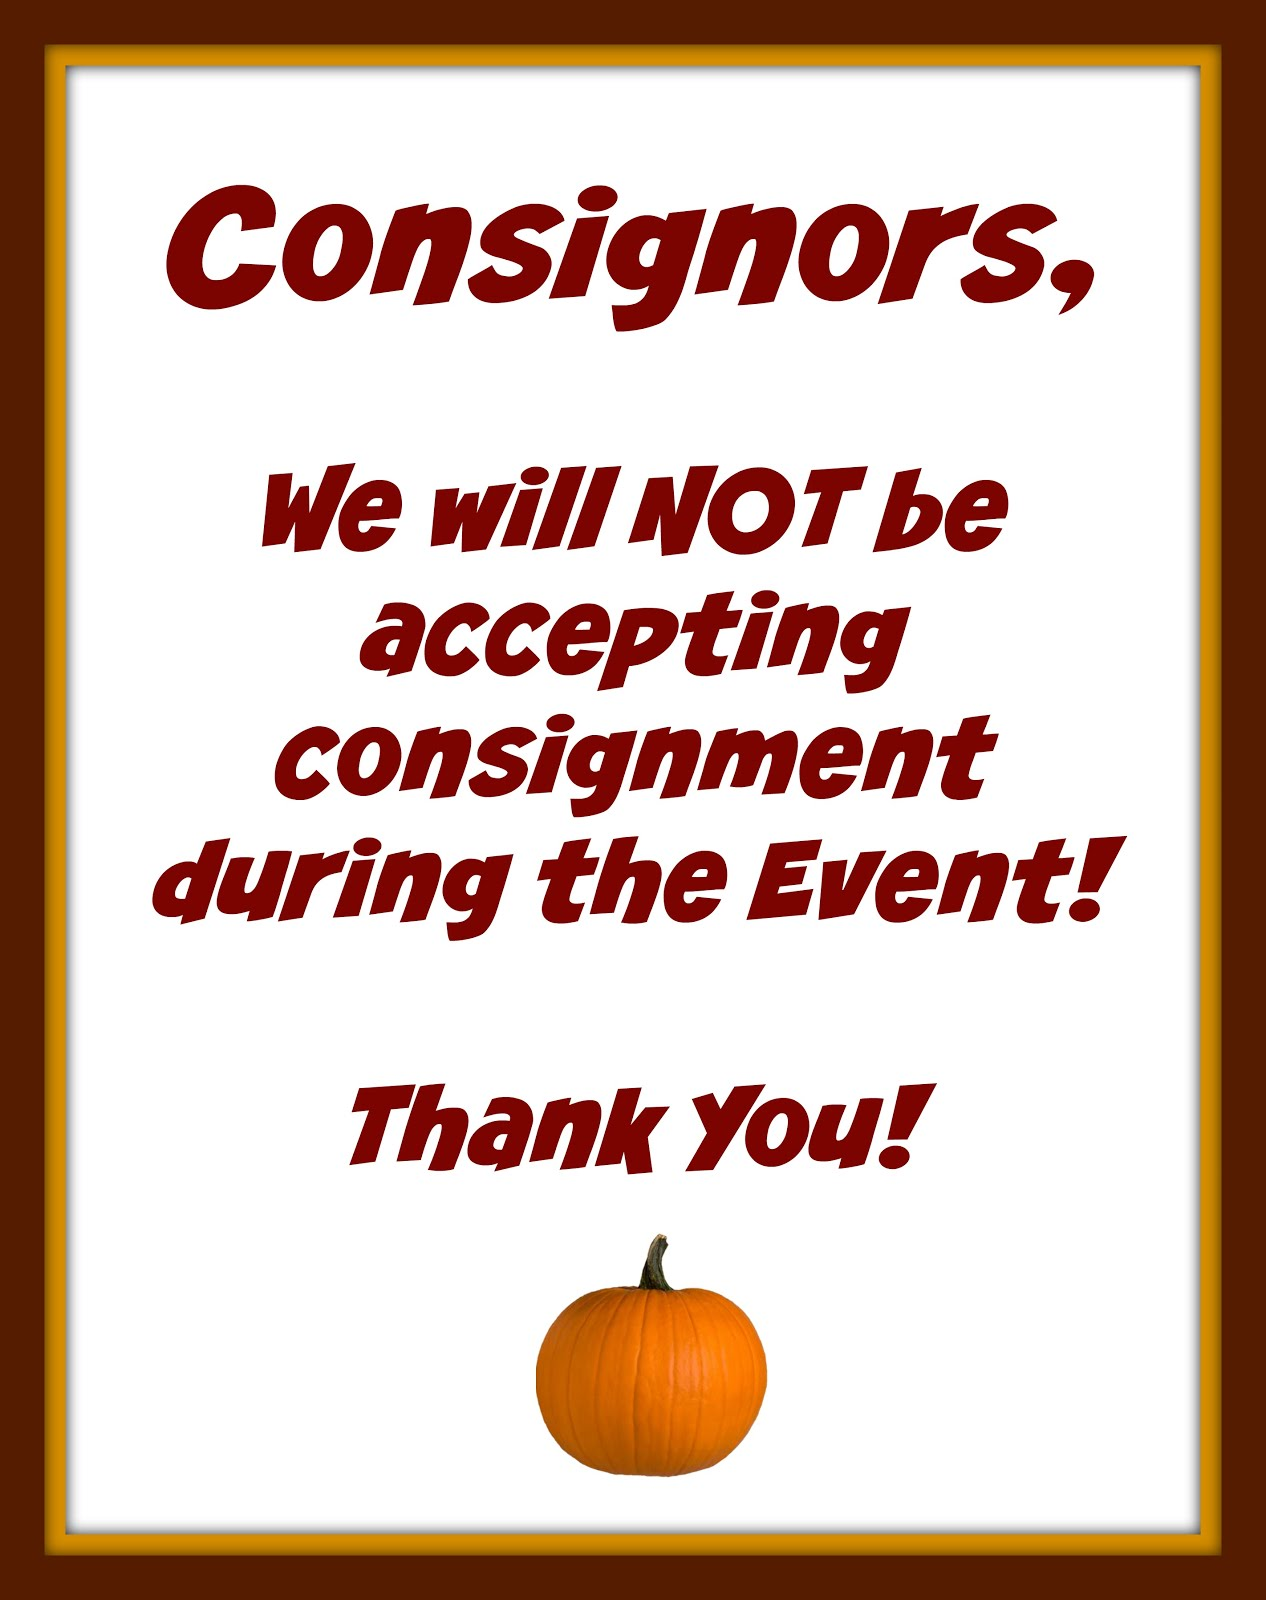 Attention Consignors!